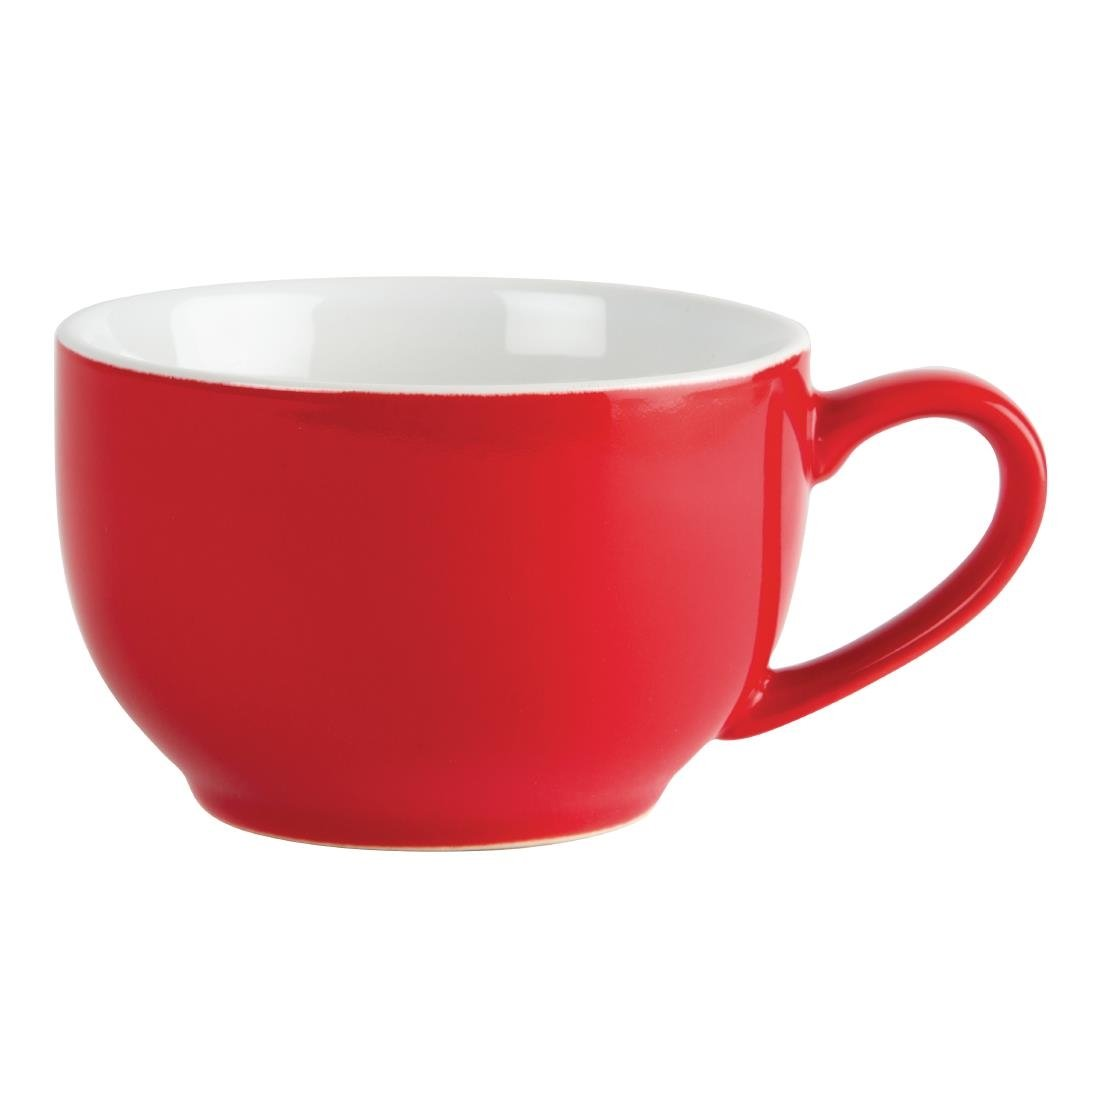 5edb82cf911 Olympia Cafe Coffee Cups Red 228ml - GK073 - Buy Online at Nisbets